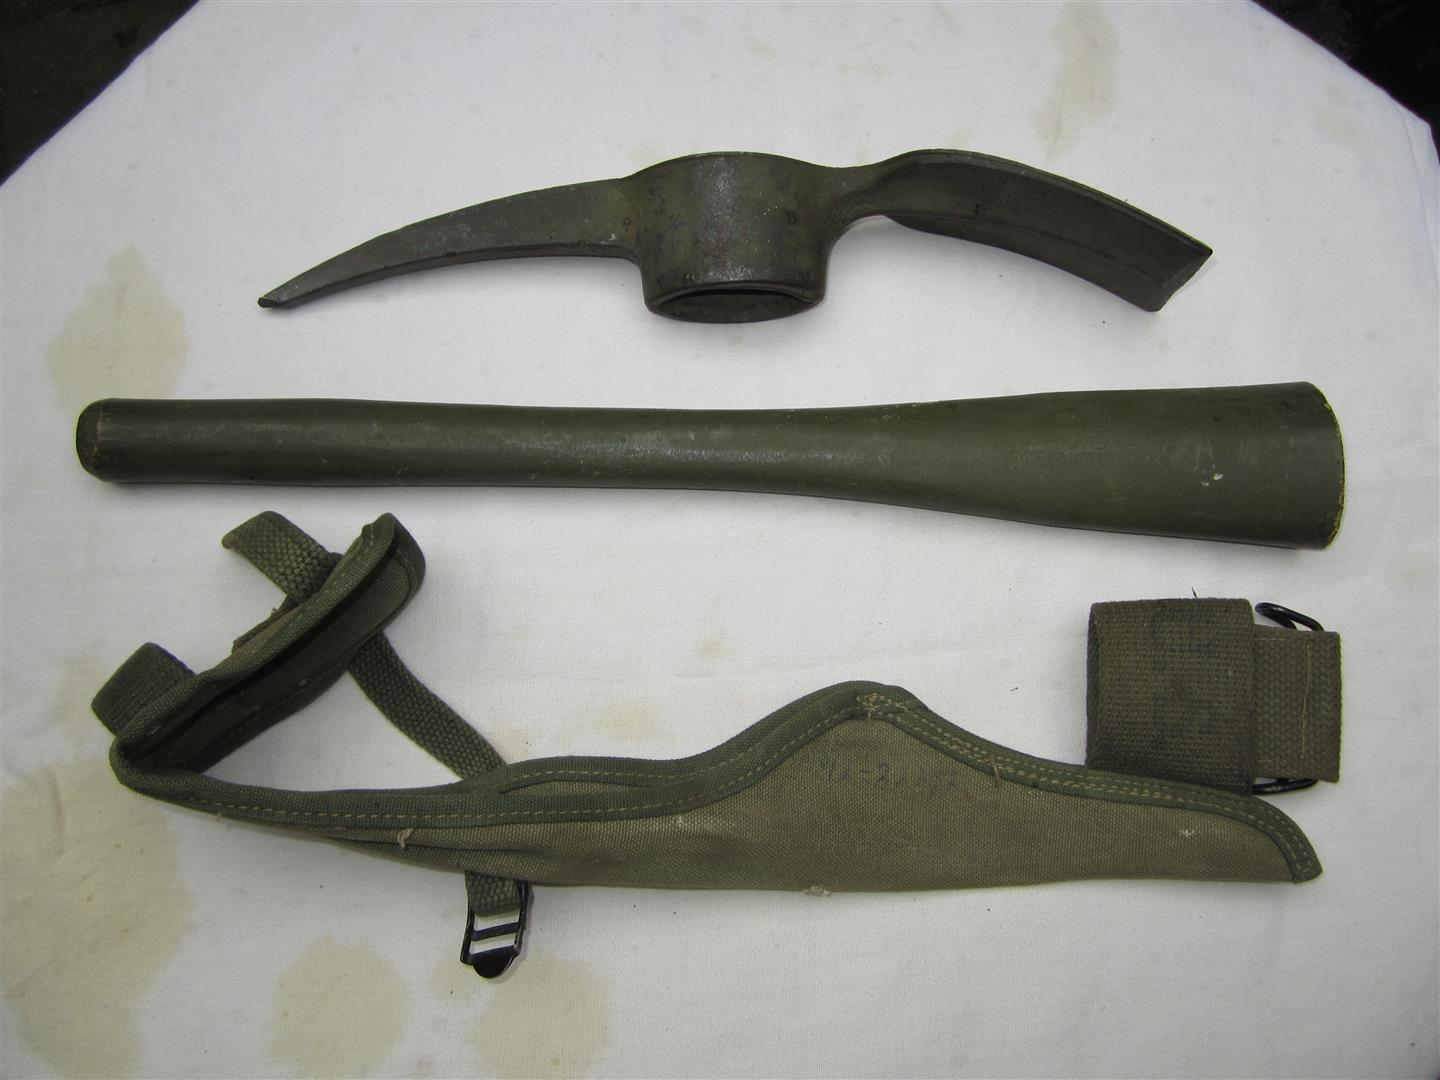 WW2 U.S. Pickaxe & Cover